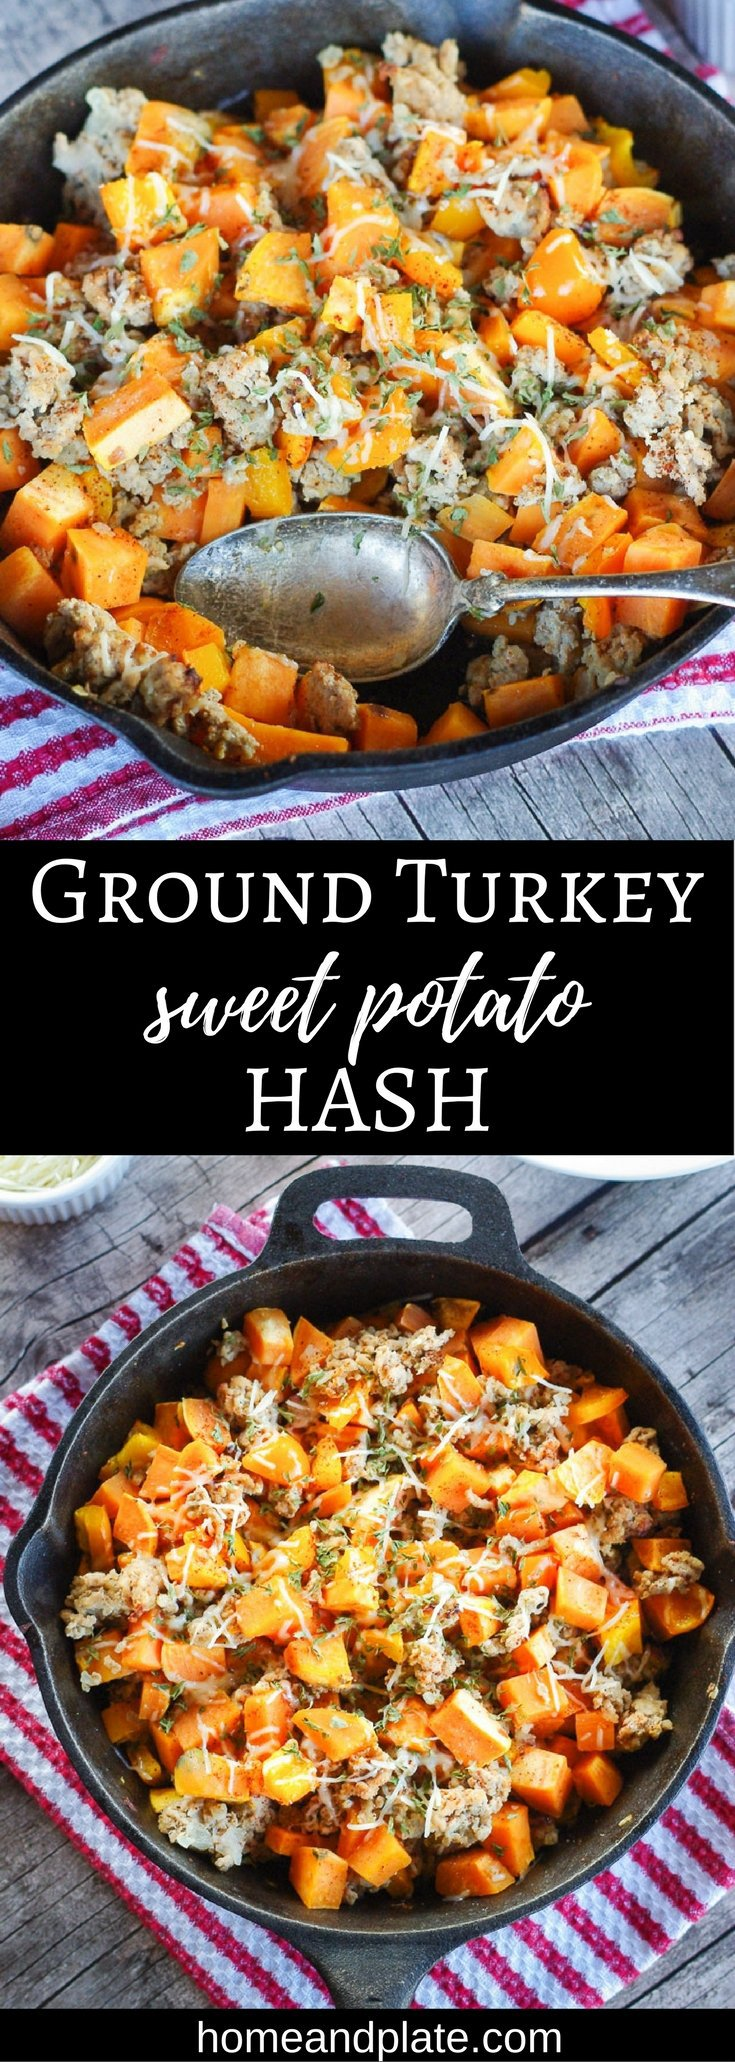 Ground Turkey Sweet Potato Hash | From skillet to plate in 30 minutes, this easy ground turkey and sweet potato hash is the ideal dish for a weeknight dinner or a weekend breakfast. | www.homeandplate.com | #holiday #leftovers #skilletmeal